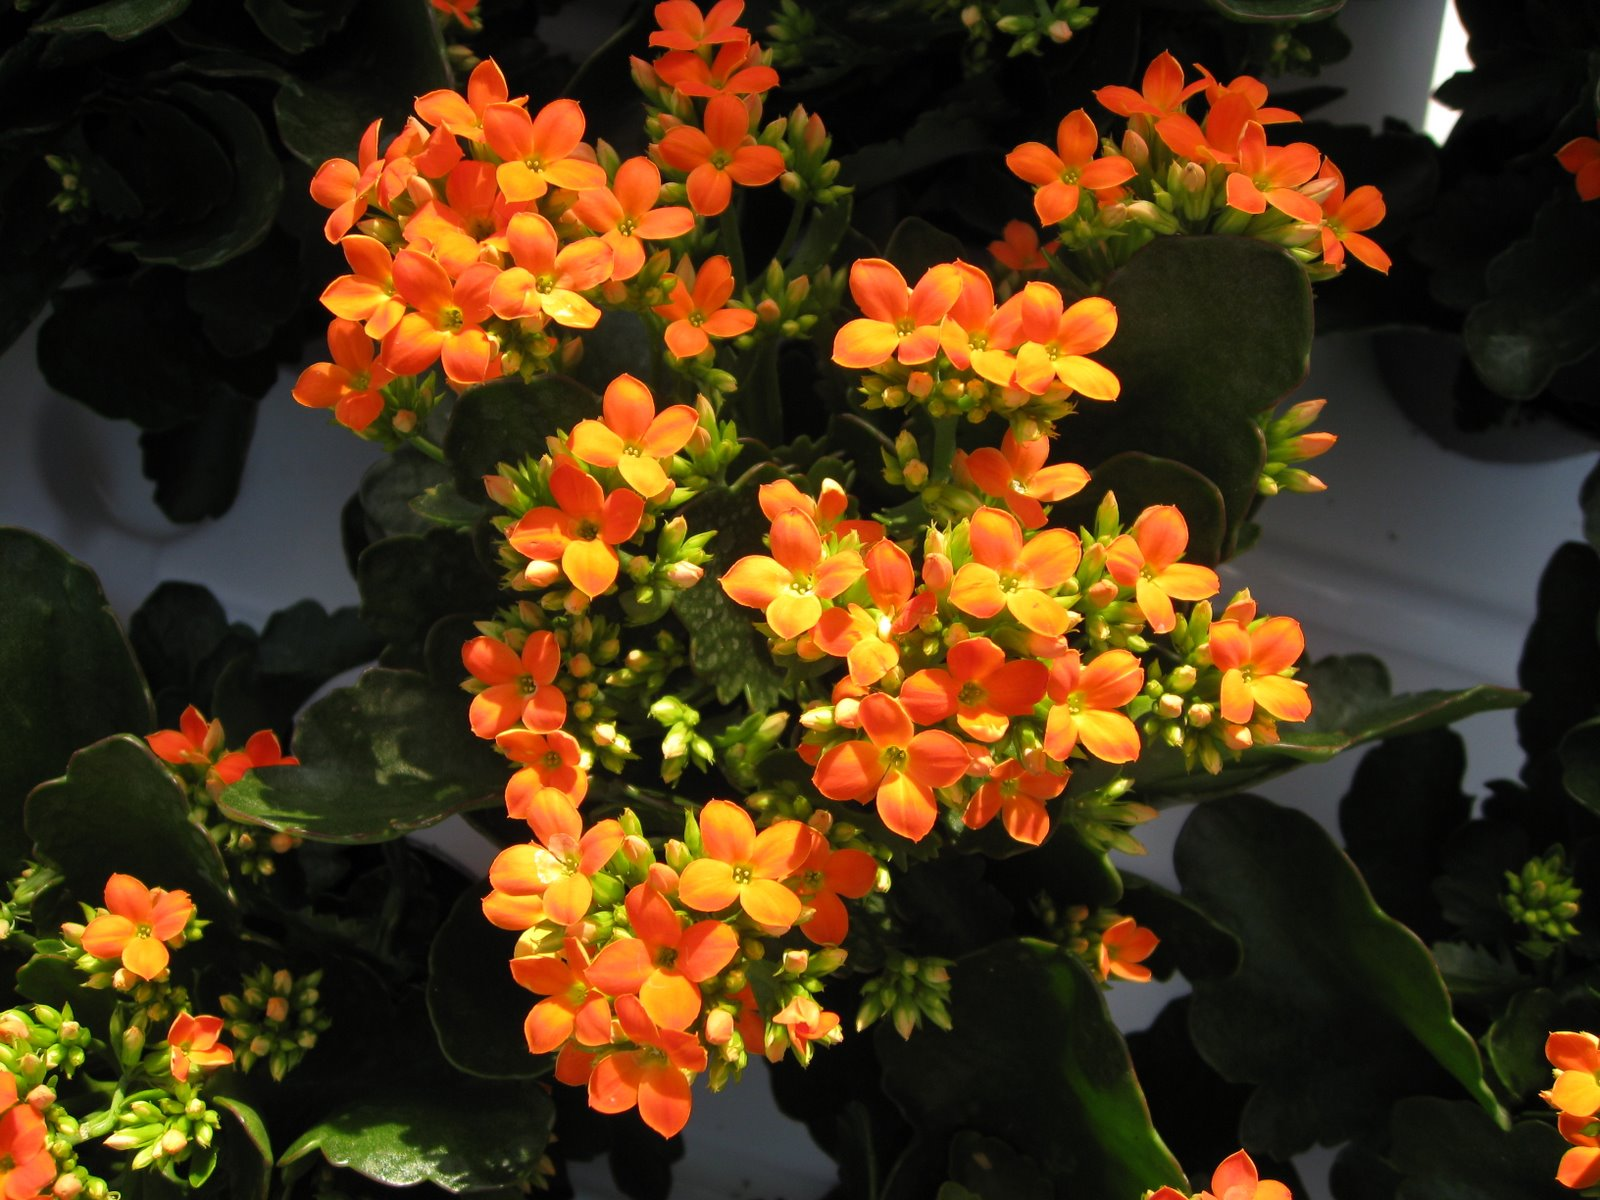 Kalanchoe blossfeldiana is a nice plant of Crassulacee family.